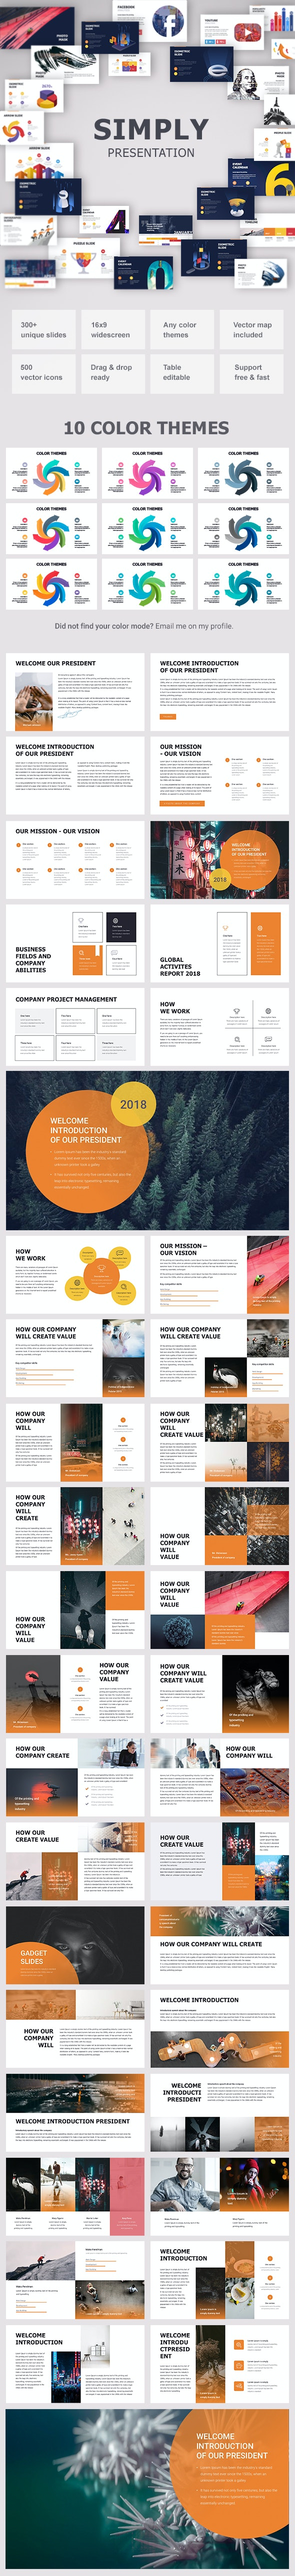 Simply Powerpoint - Pitch Deck PowerPoint Templates